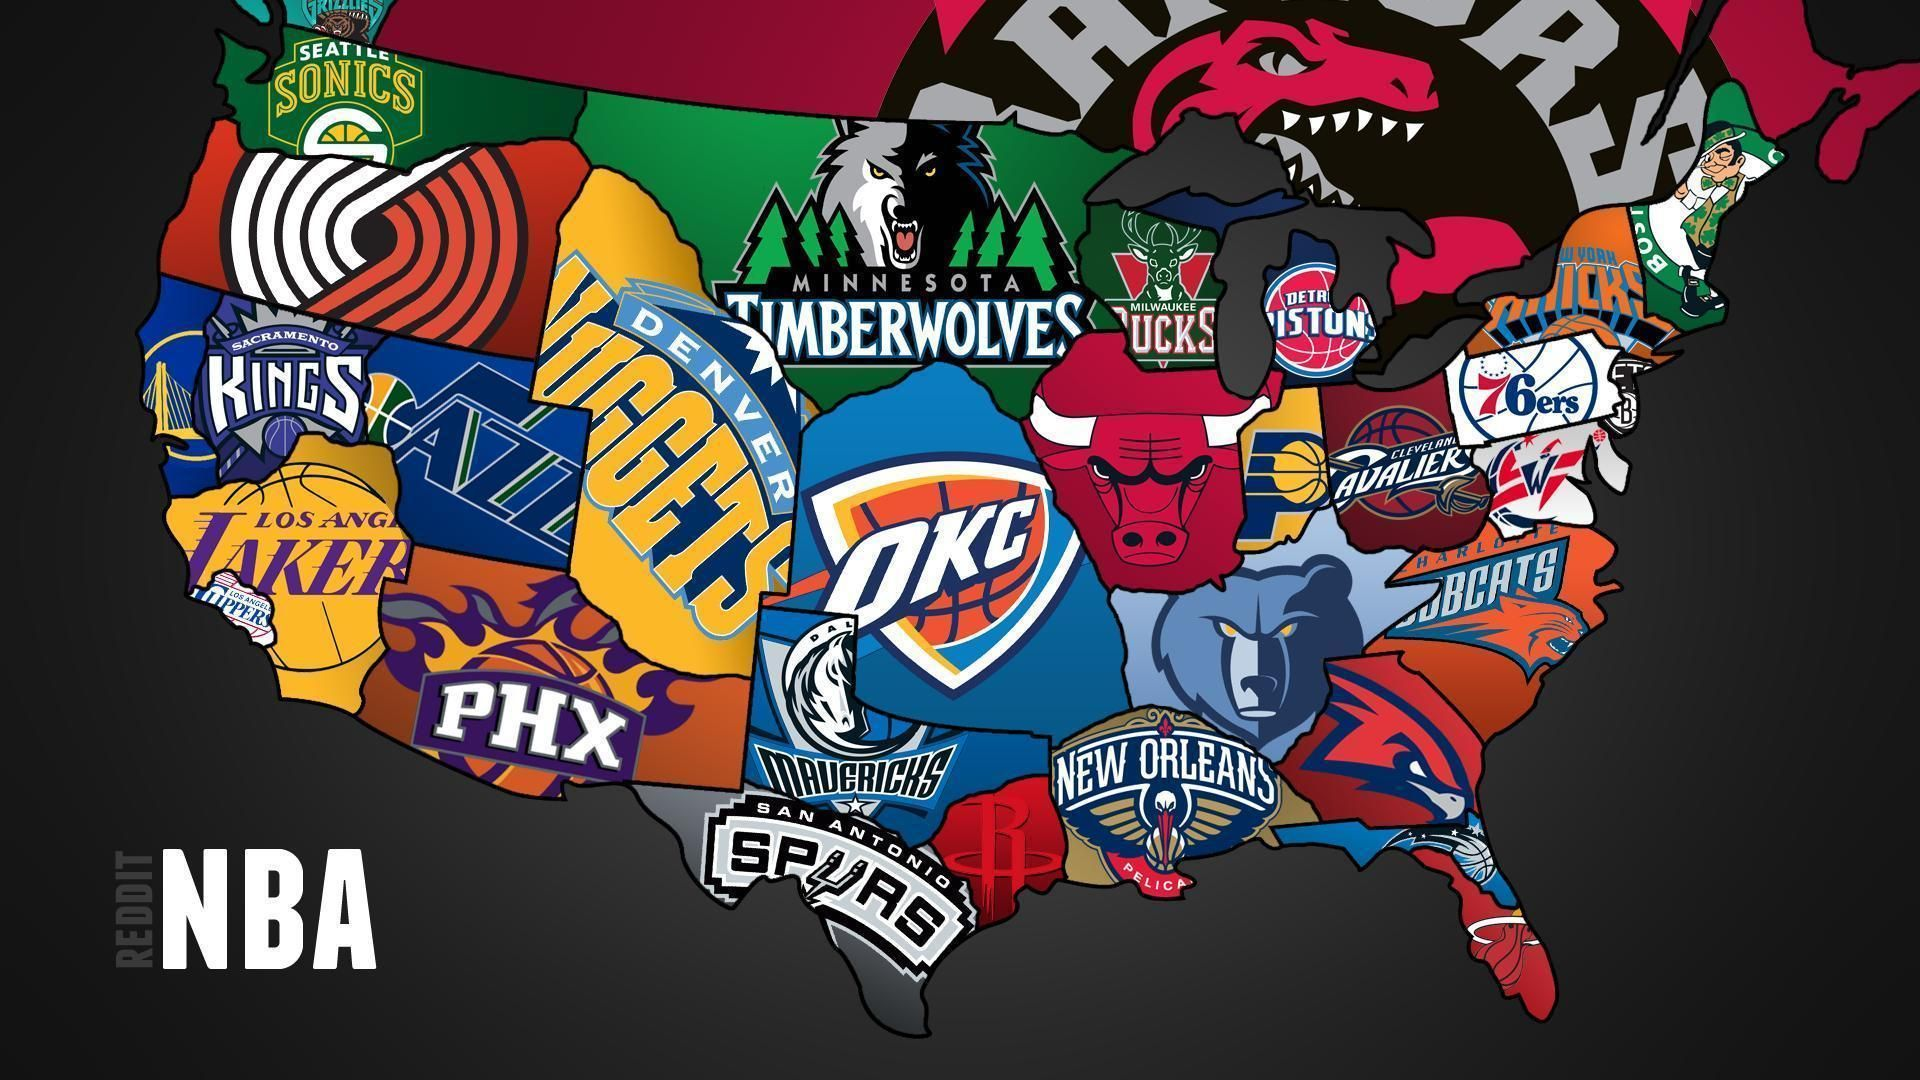 Hd wallpaper nba - Nba Map Wallpaper Hd Wallpaper